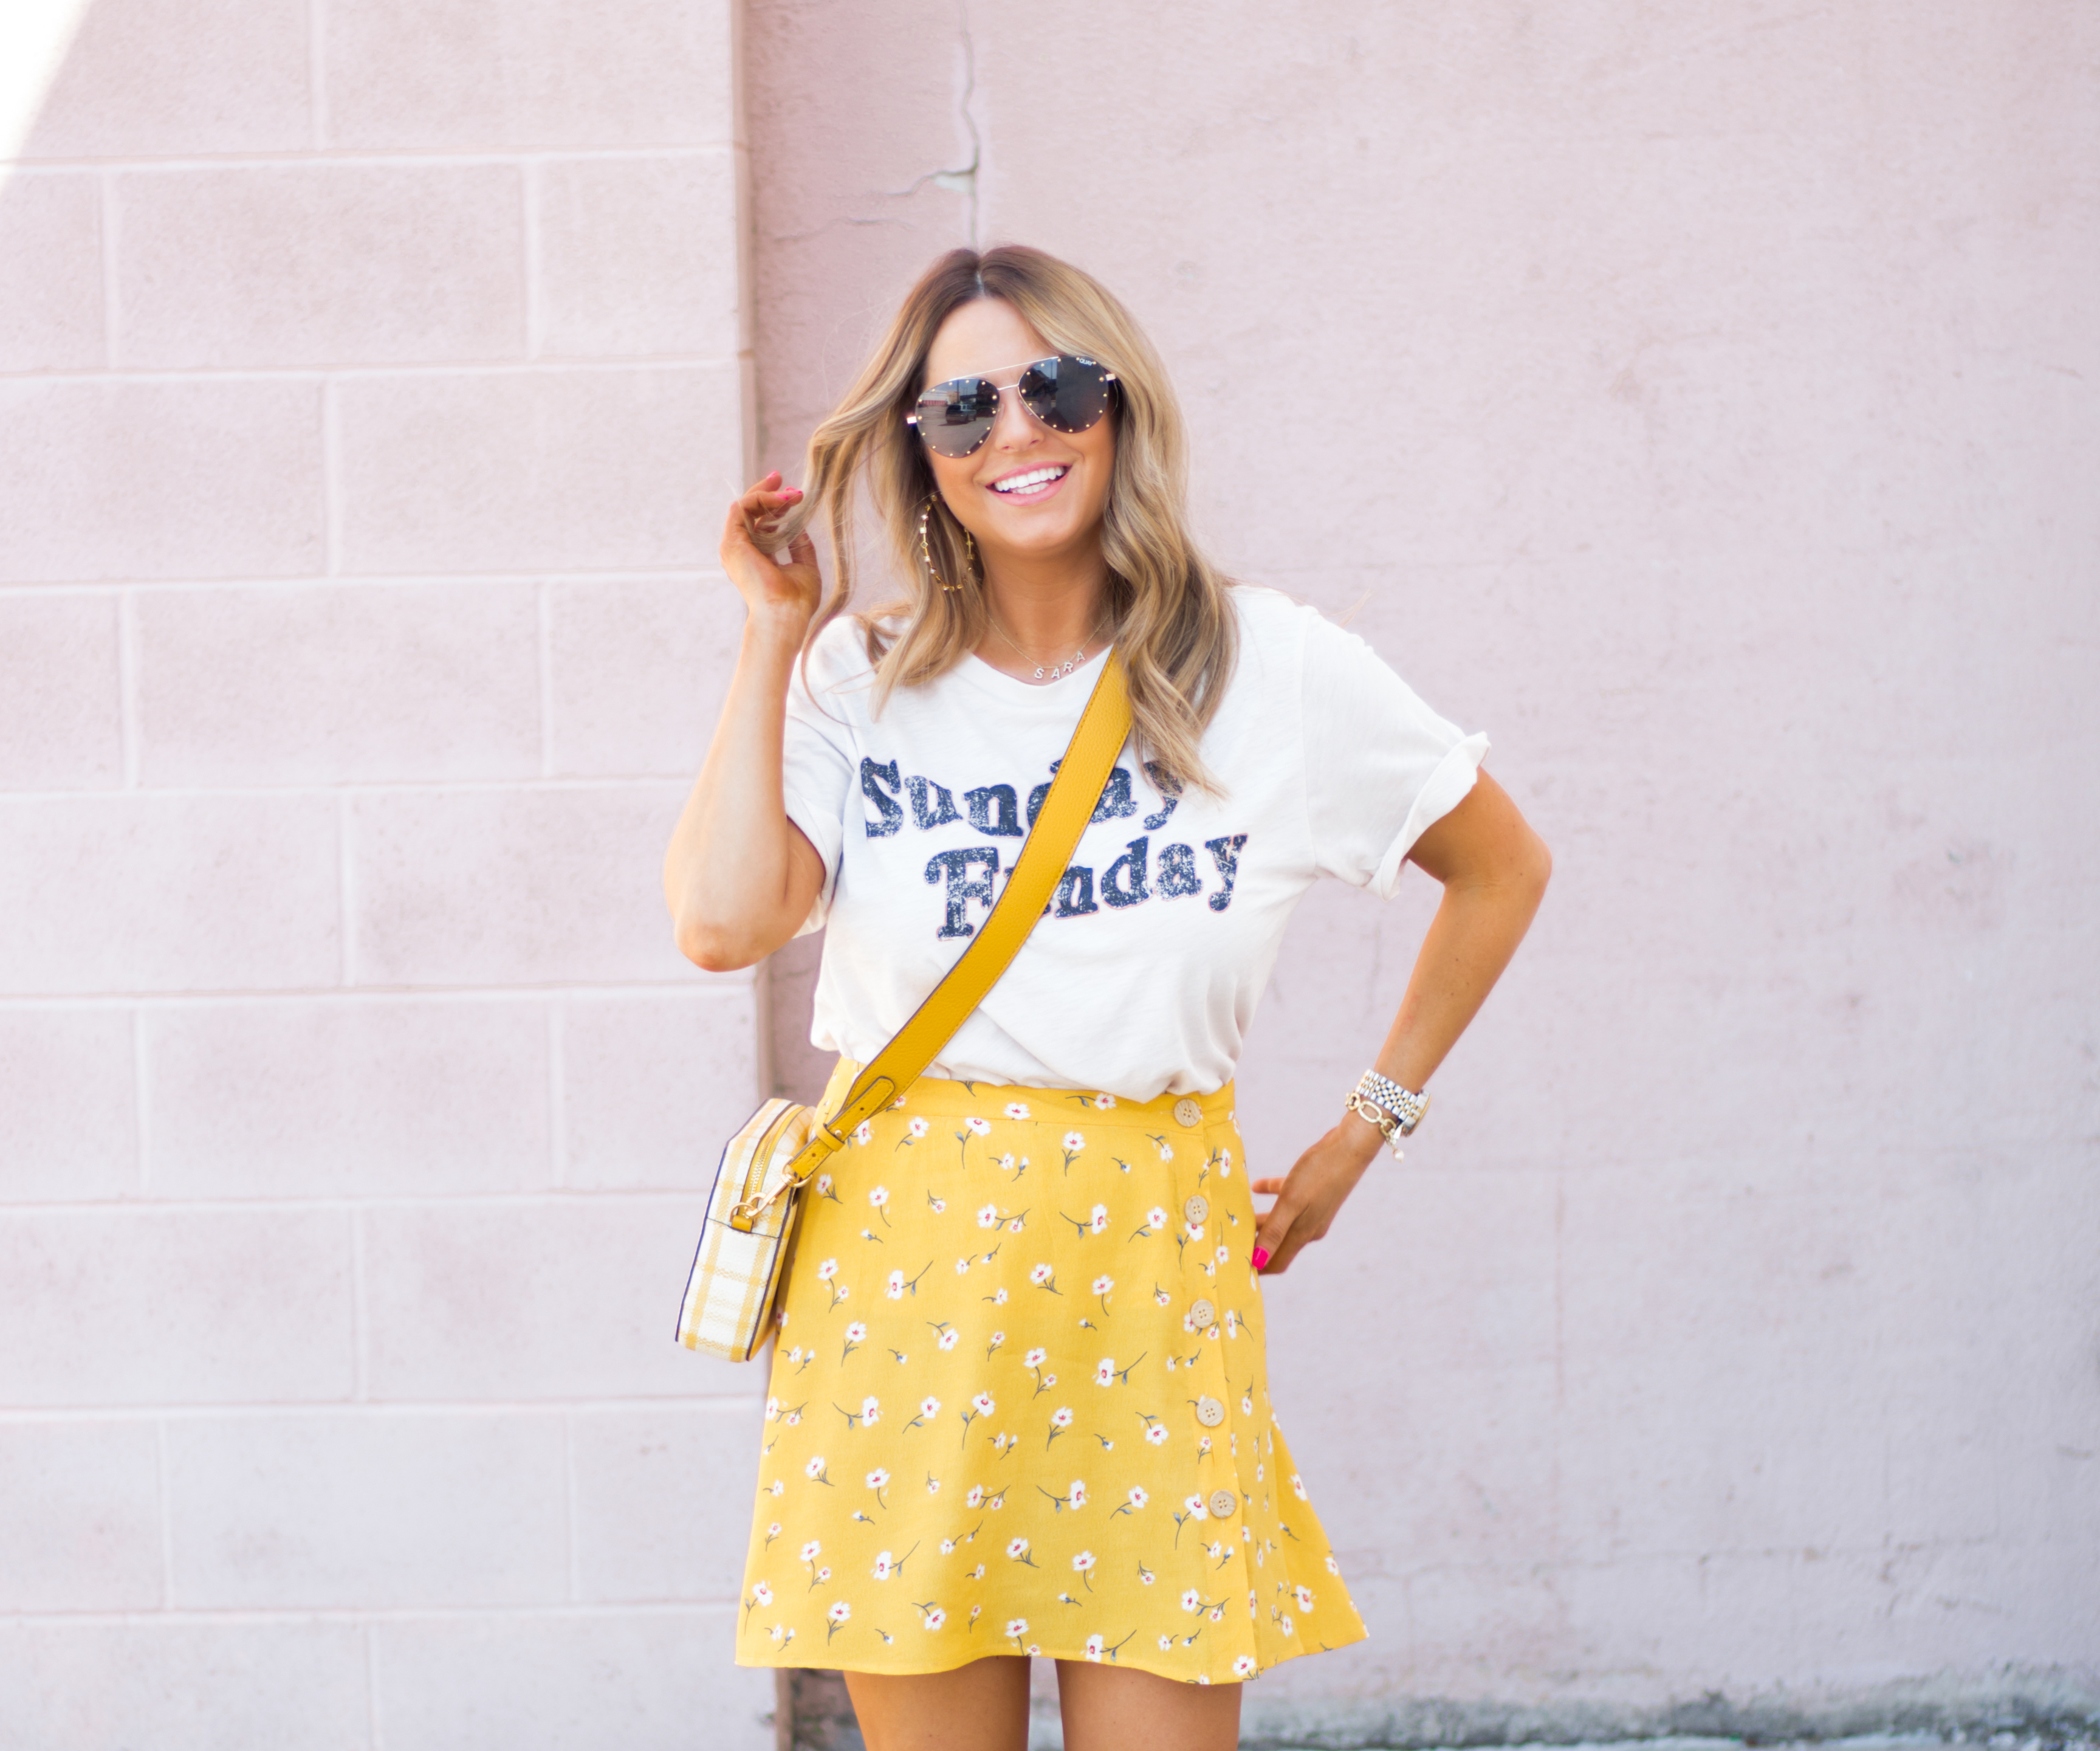 Sunday Funday-Graphic Tee-Floral Skirt-Mini Skirt-Spring Fashion-Spring Style-Tory Burch Purse-Quay Sunglasses-Tan Wedges-Espadrilles-Yellow-Colorful Style-Sabby Style-Women's Fashion-Omaha Blog-Omaha Blogger-12